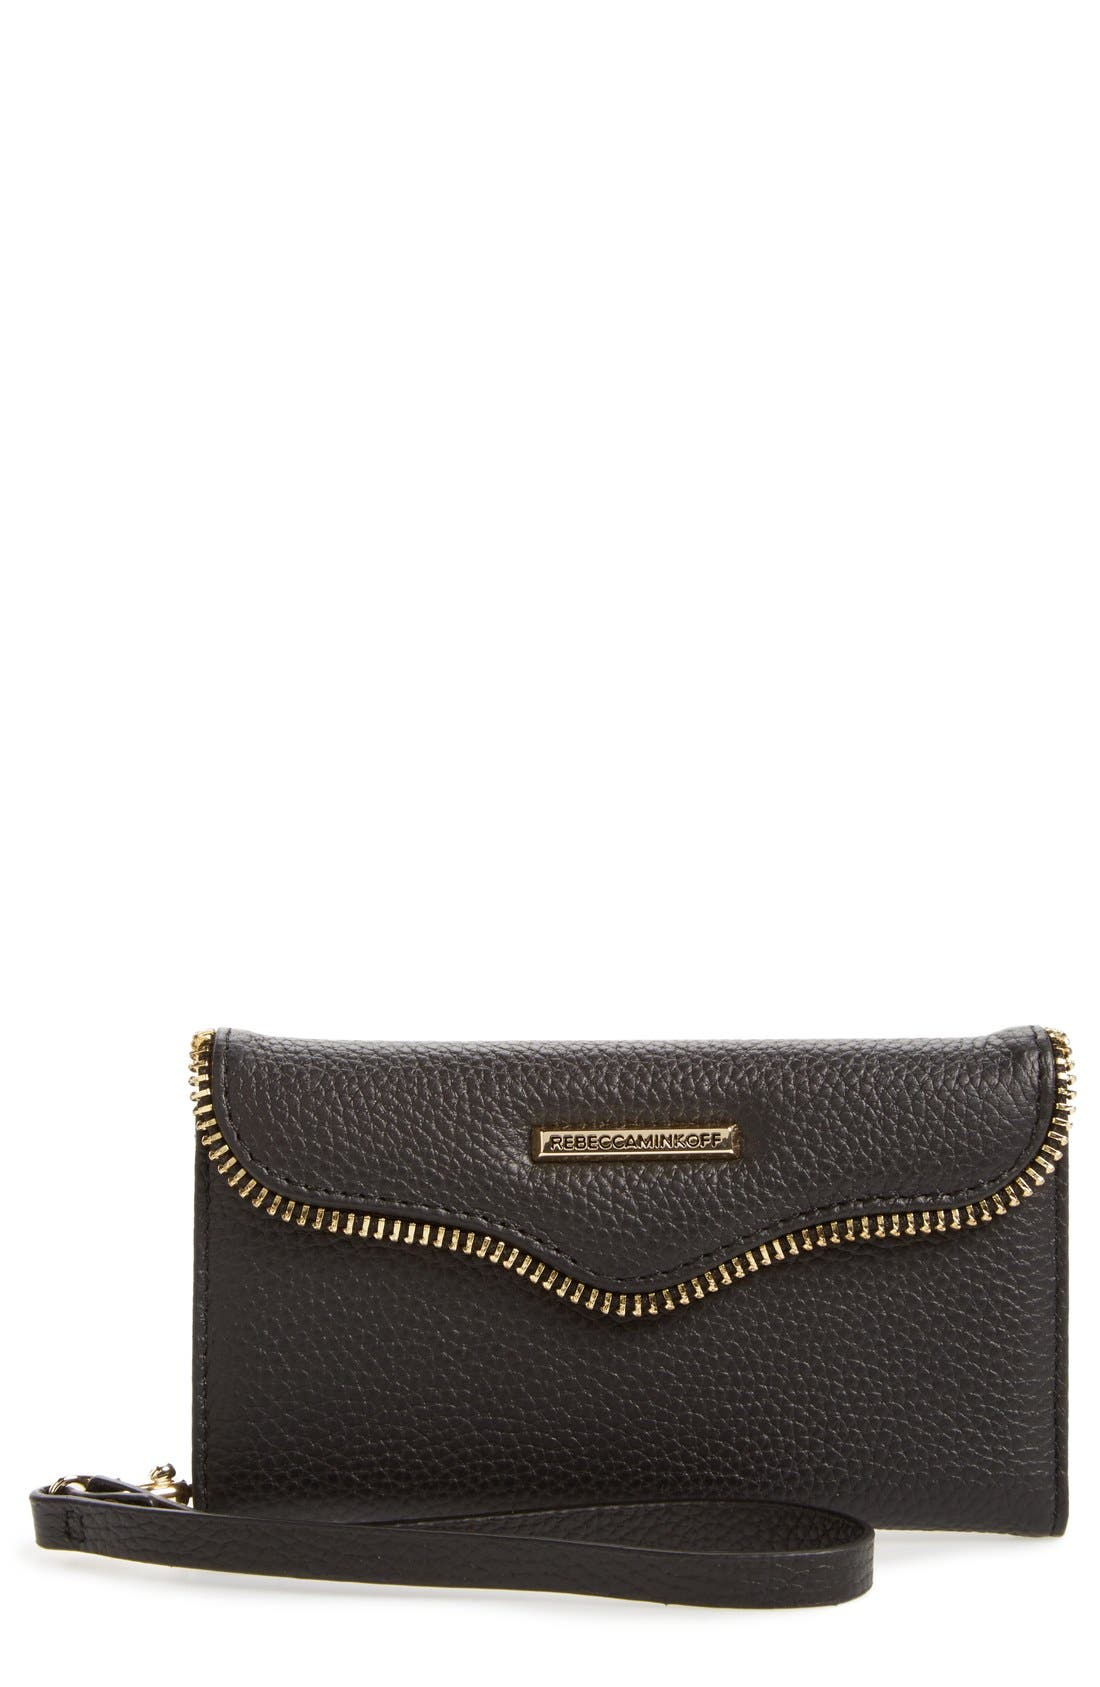 REBECCA MINKOFF Leather iPhone 7 Wristlet